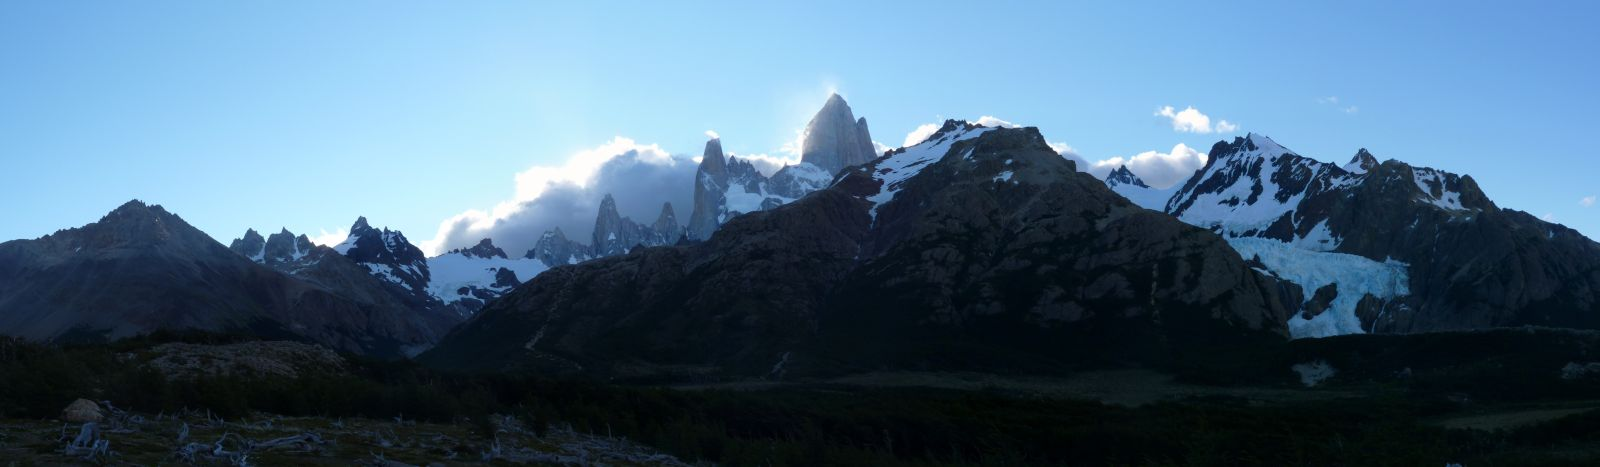 fitz-roy-du-camping-poincenot-2